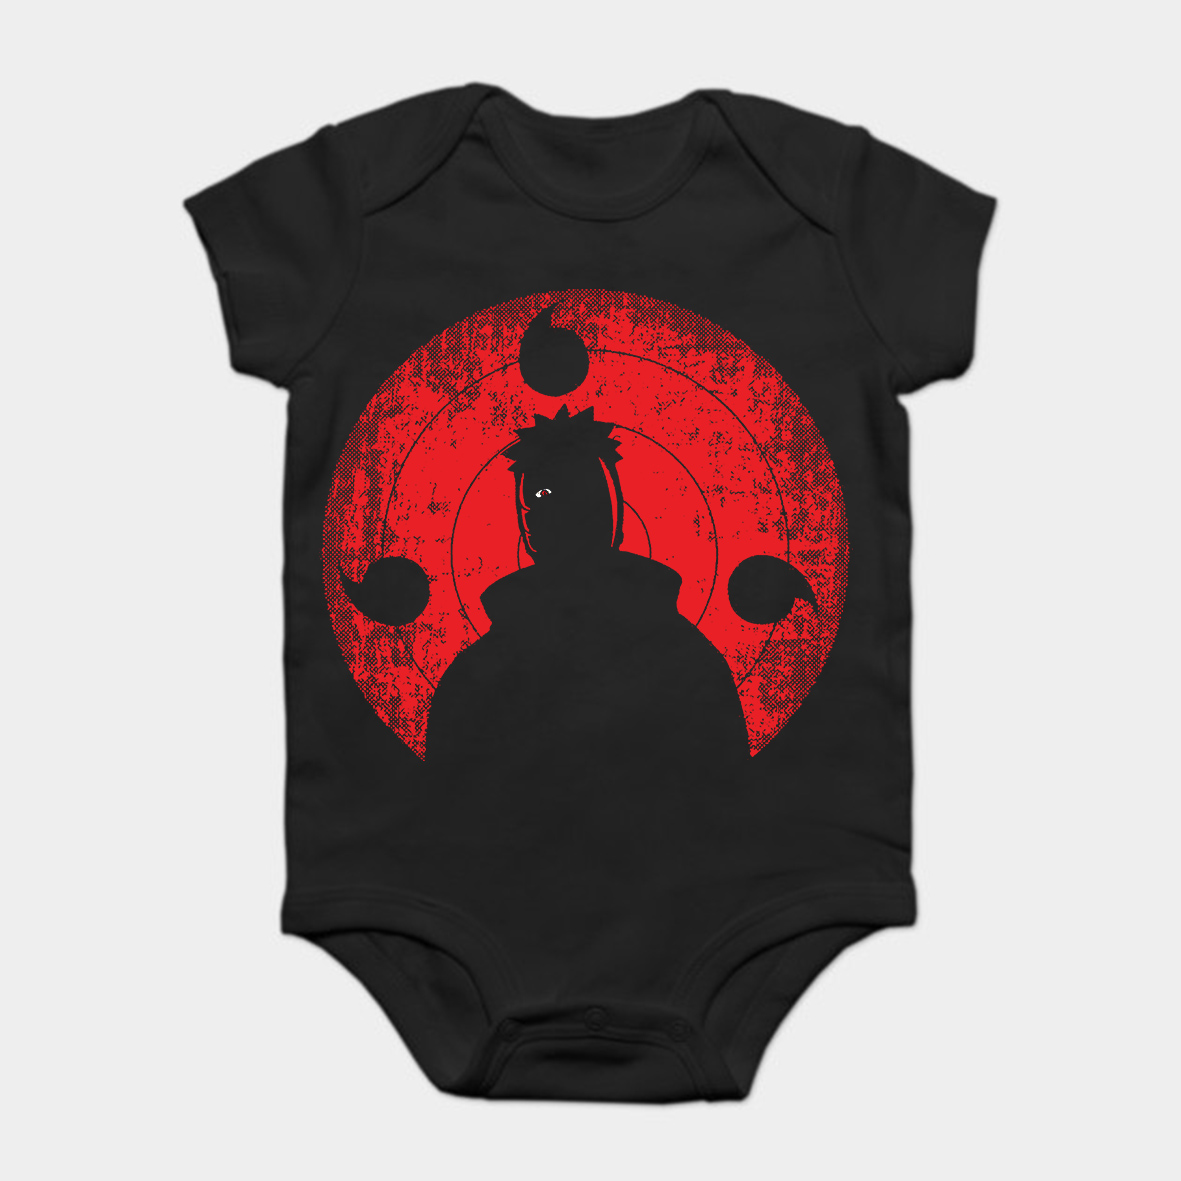 a5f879e0f7 Baby Onesie Baby Bodysuits kid t shirt Printed Cotton Short Sleeve New  Style TOBI ANIME SHIRT Naruto Shippuden-in Bodysuits from Mother   Kids on  ...